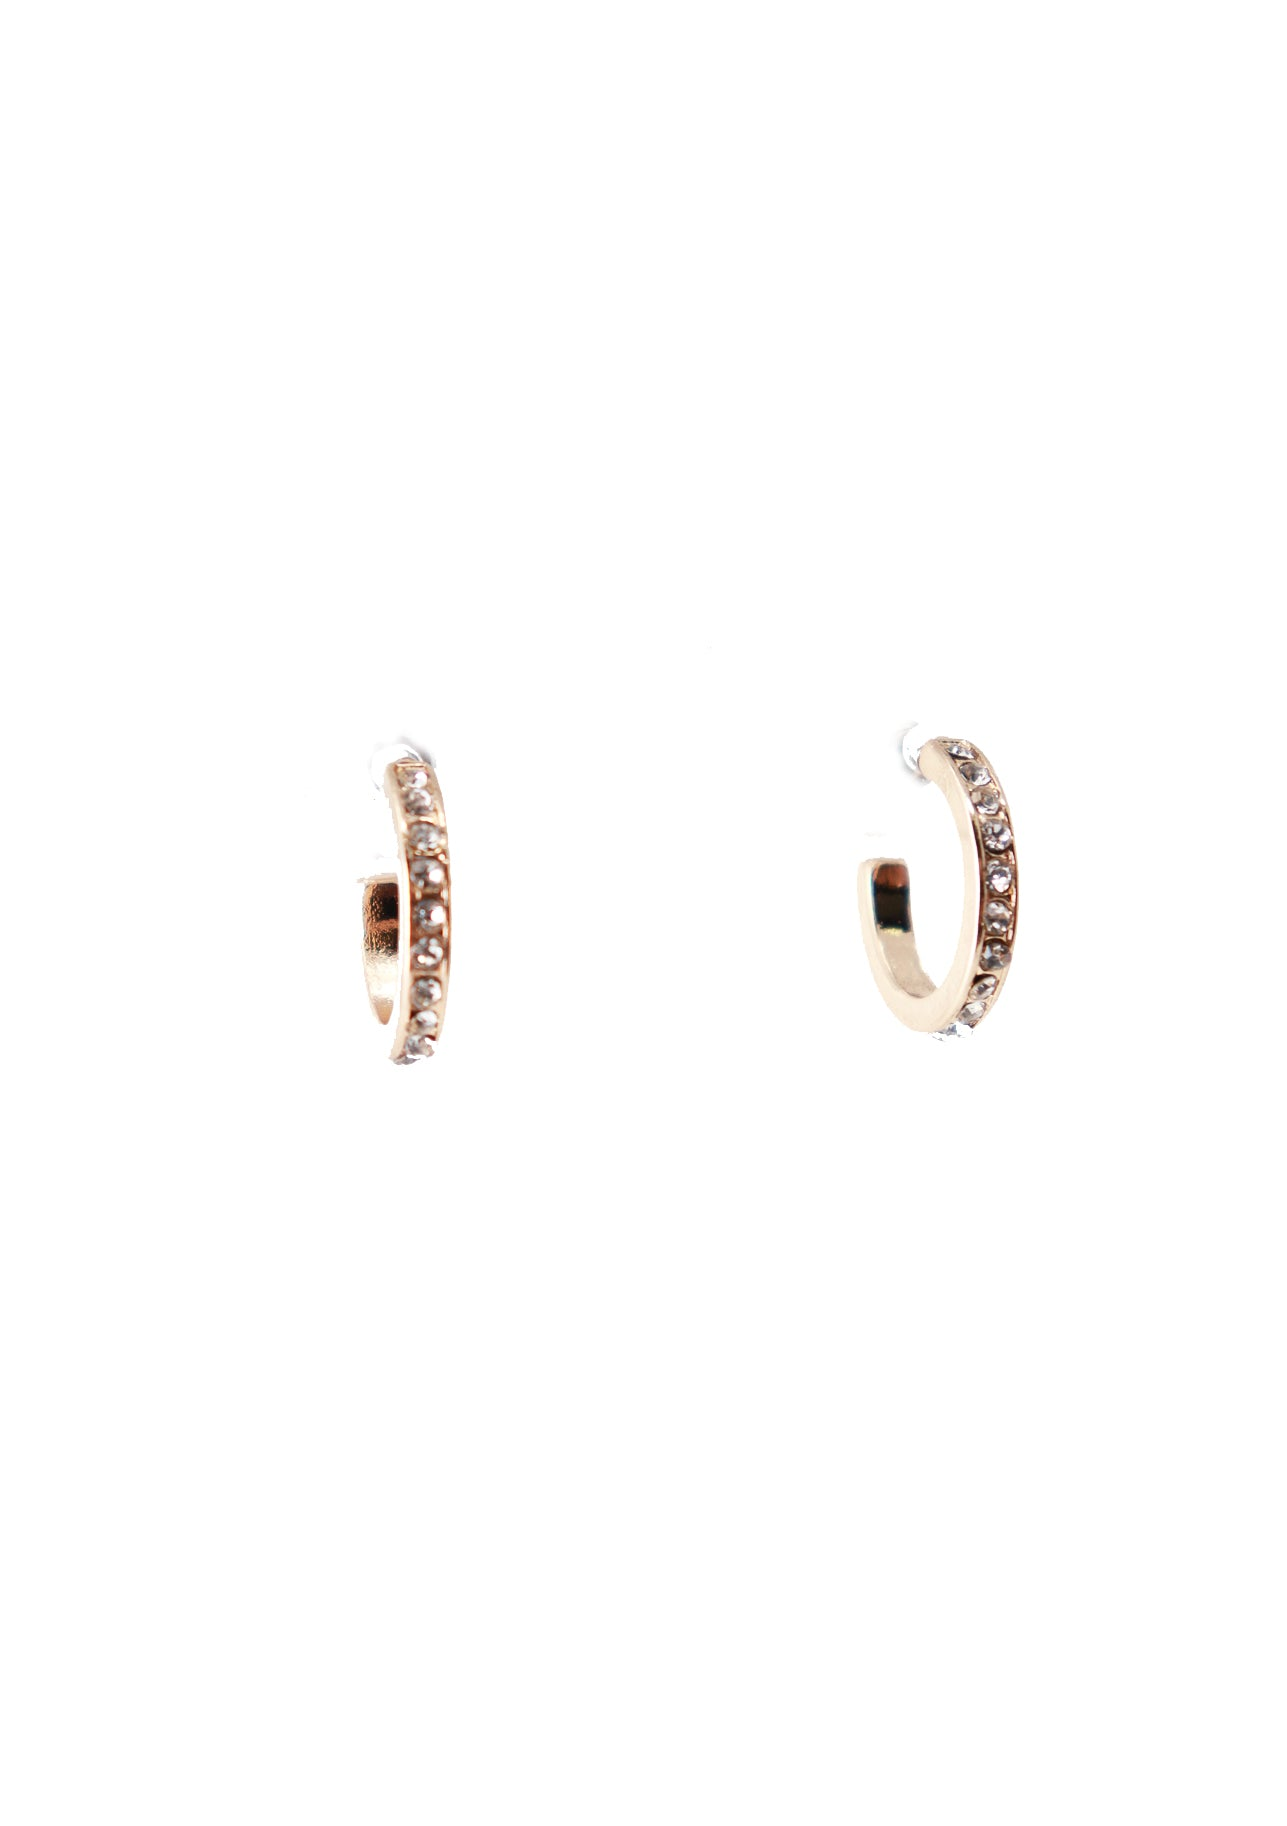 Huggie Hoop Crystal Earrings - Gabrielle's Biloxi